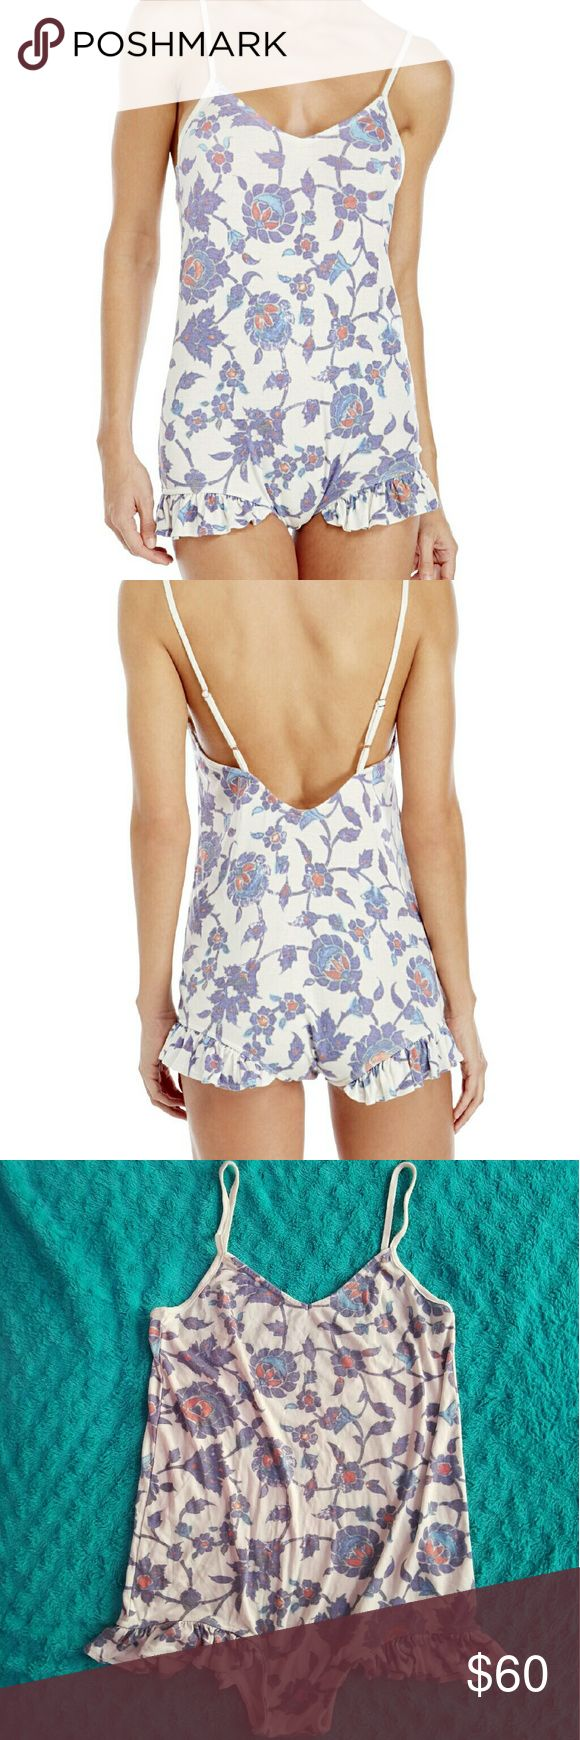 Wildfox Mosque Ruffle Romper New without tags, only tried on. I would recommend for short torso ladies as the midsection of this particular cut is pretty short for a romper. Wildfox Intimates & Sleepwear